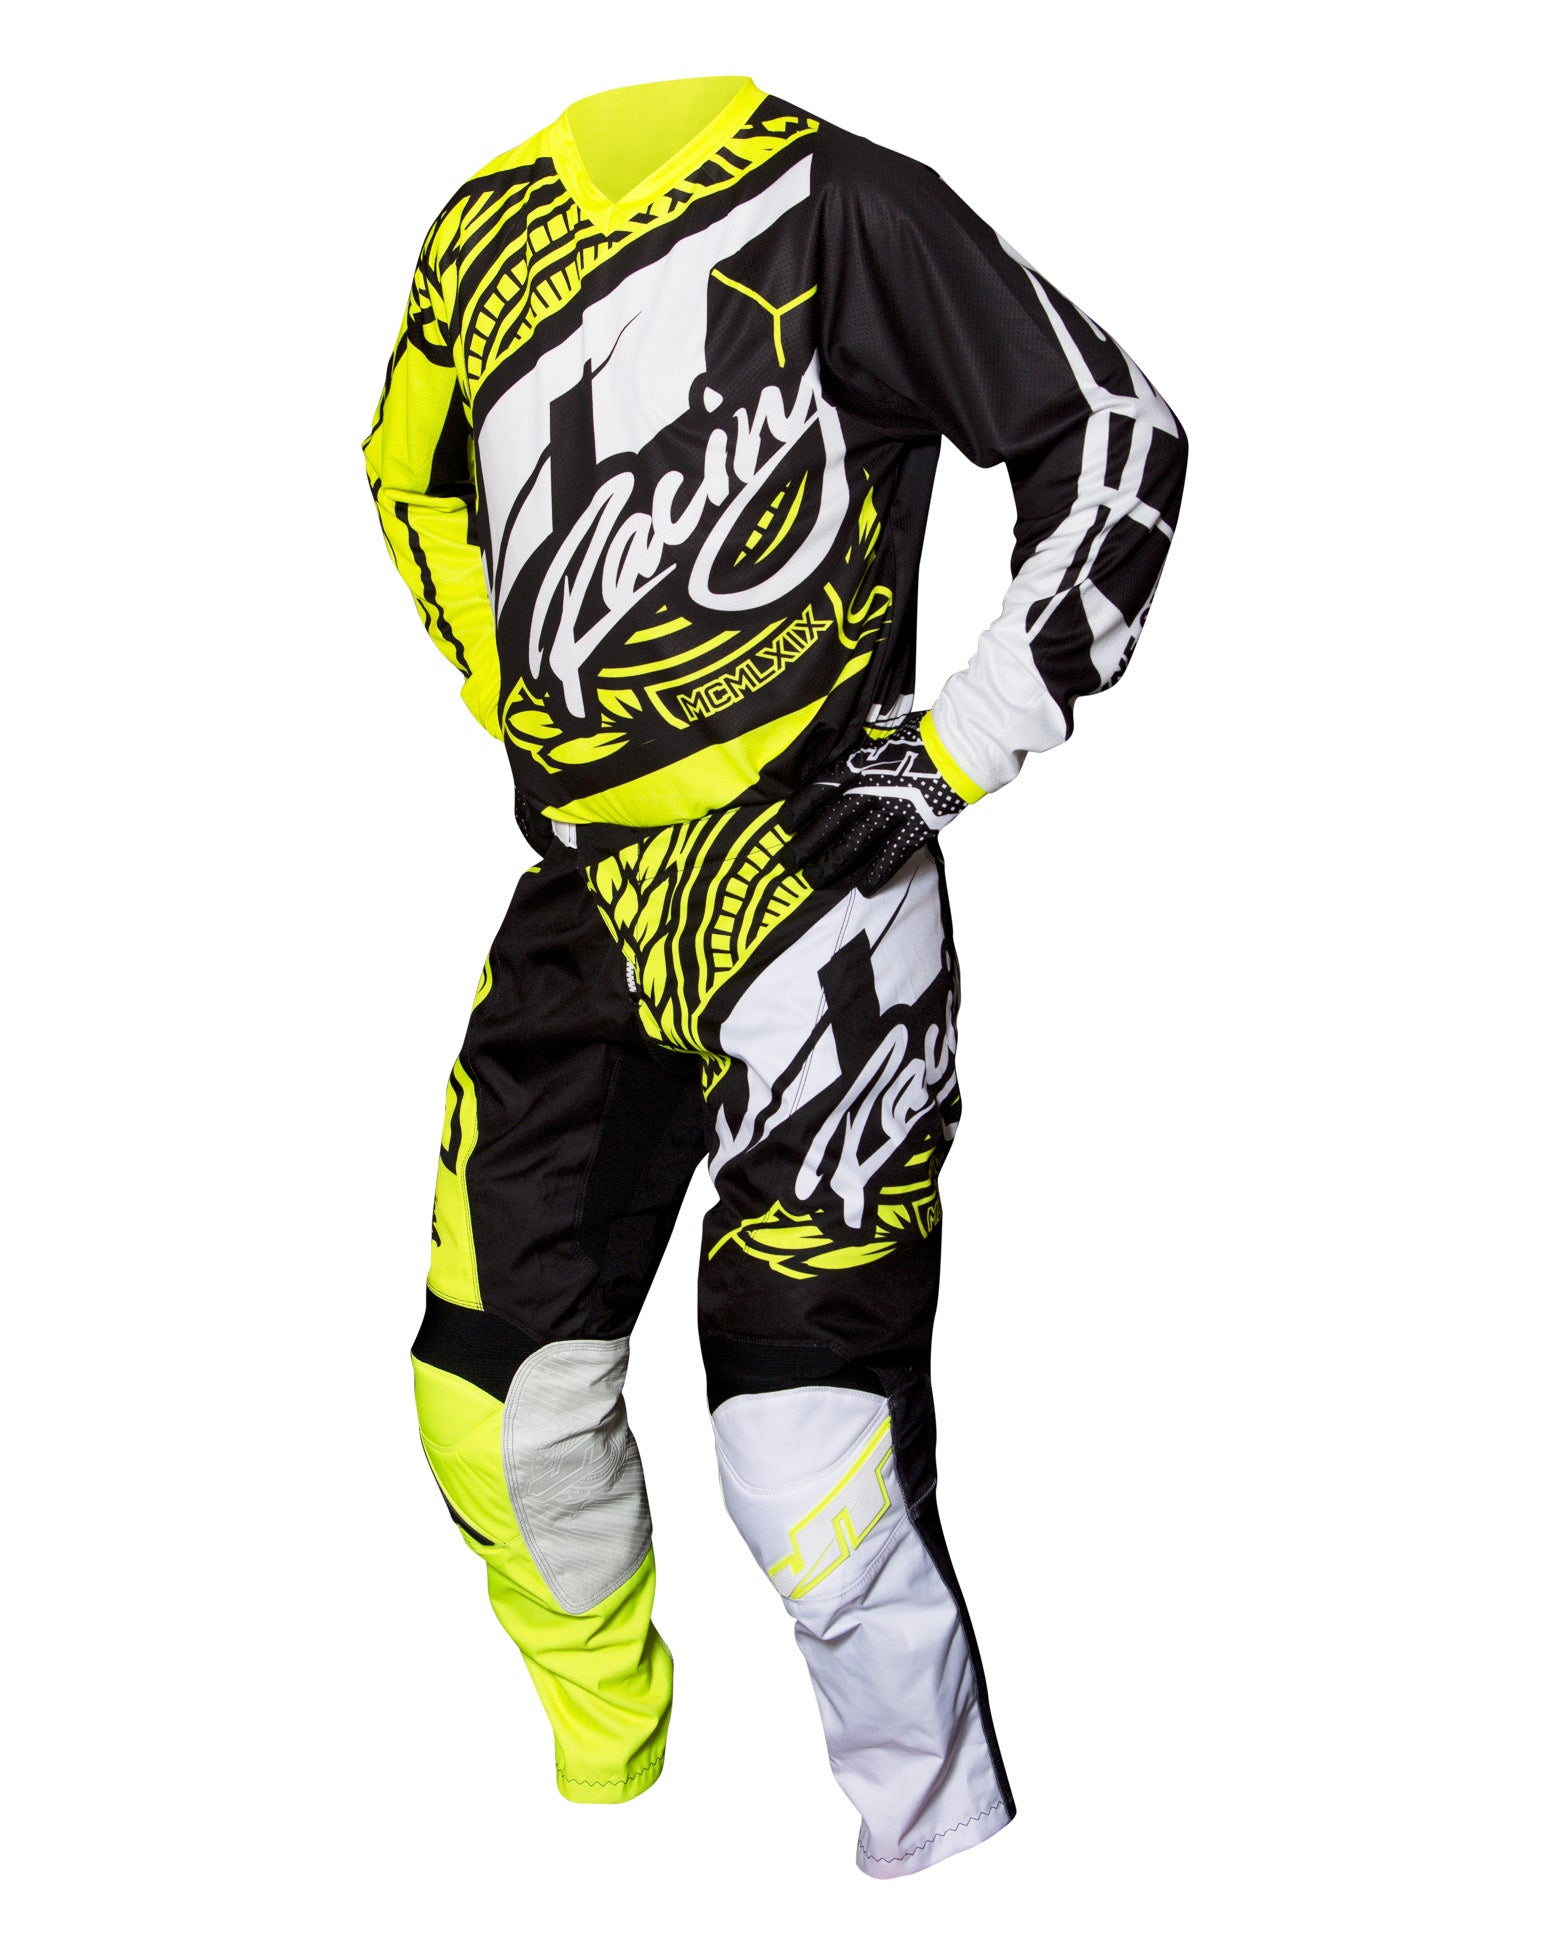 JT RACING USA-2017 Flex-Victory Pants, Black/Neon Yellow